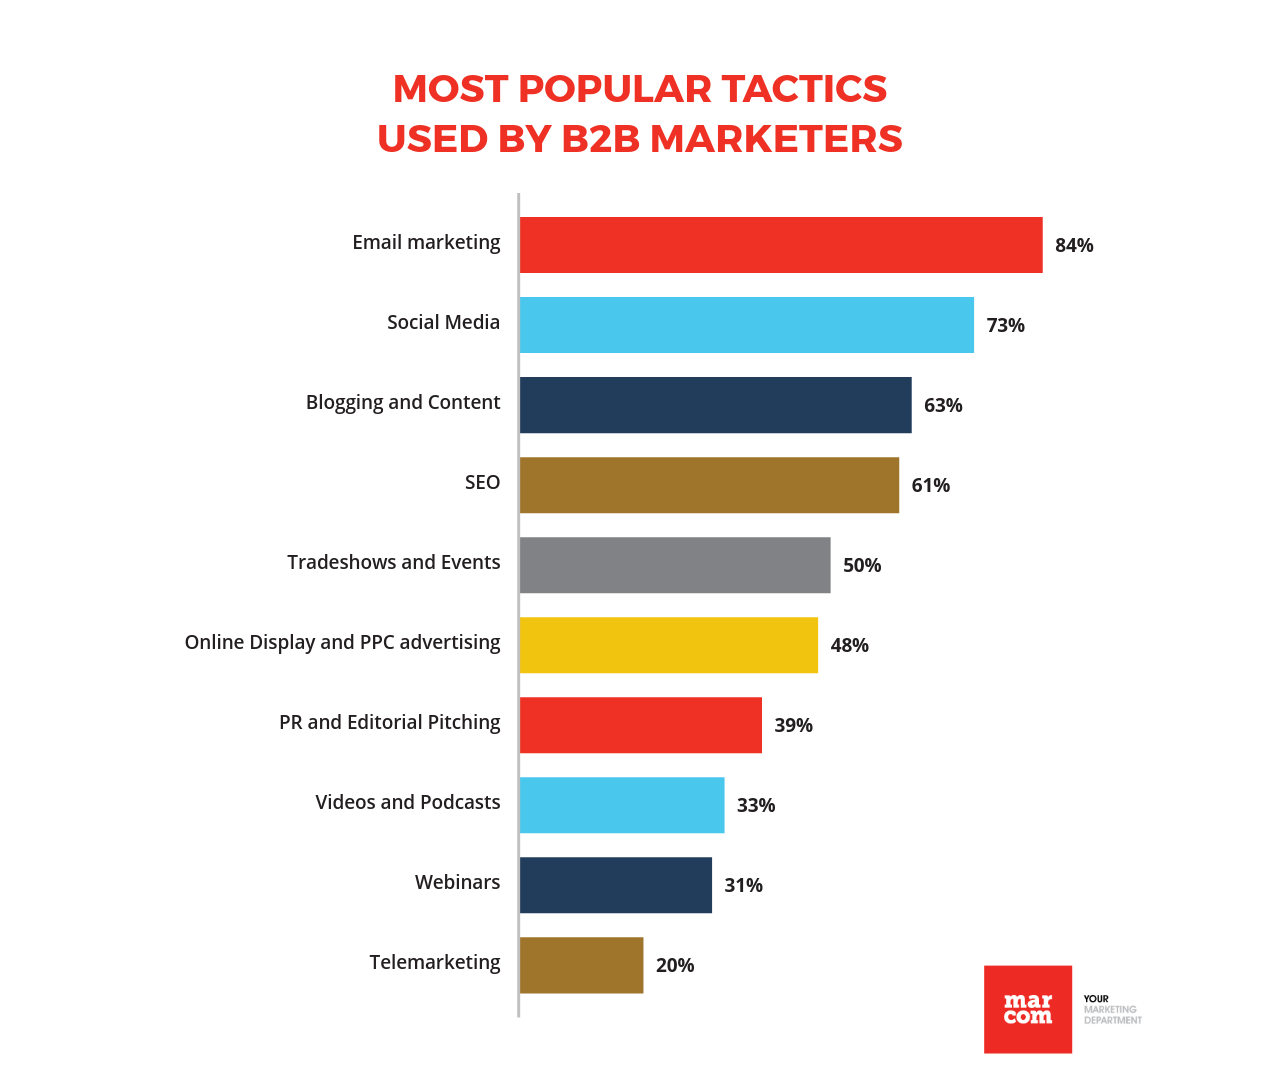 Most popular tactics used by B2B marketers